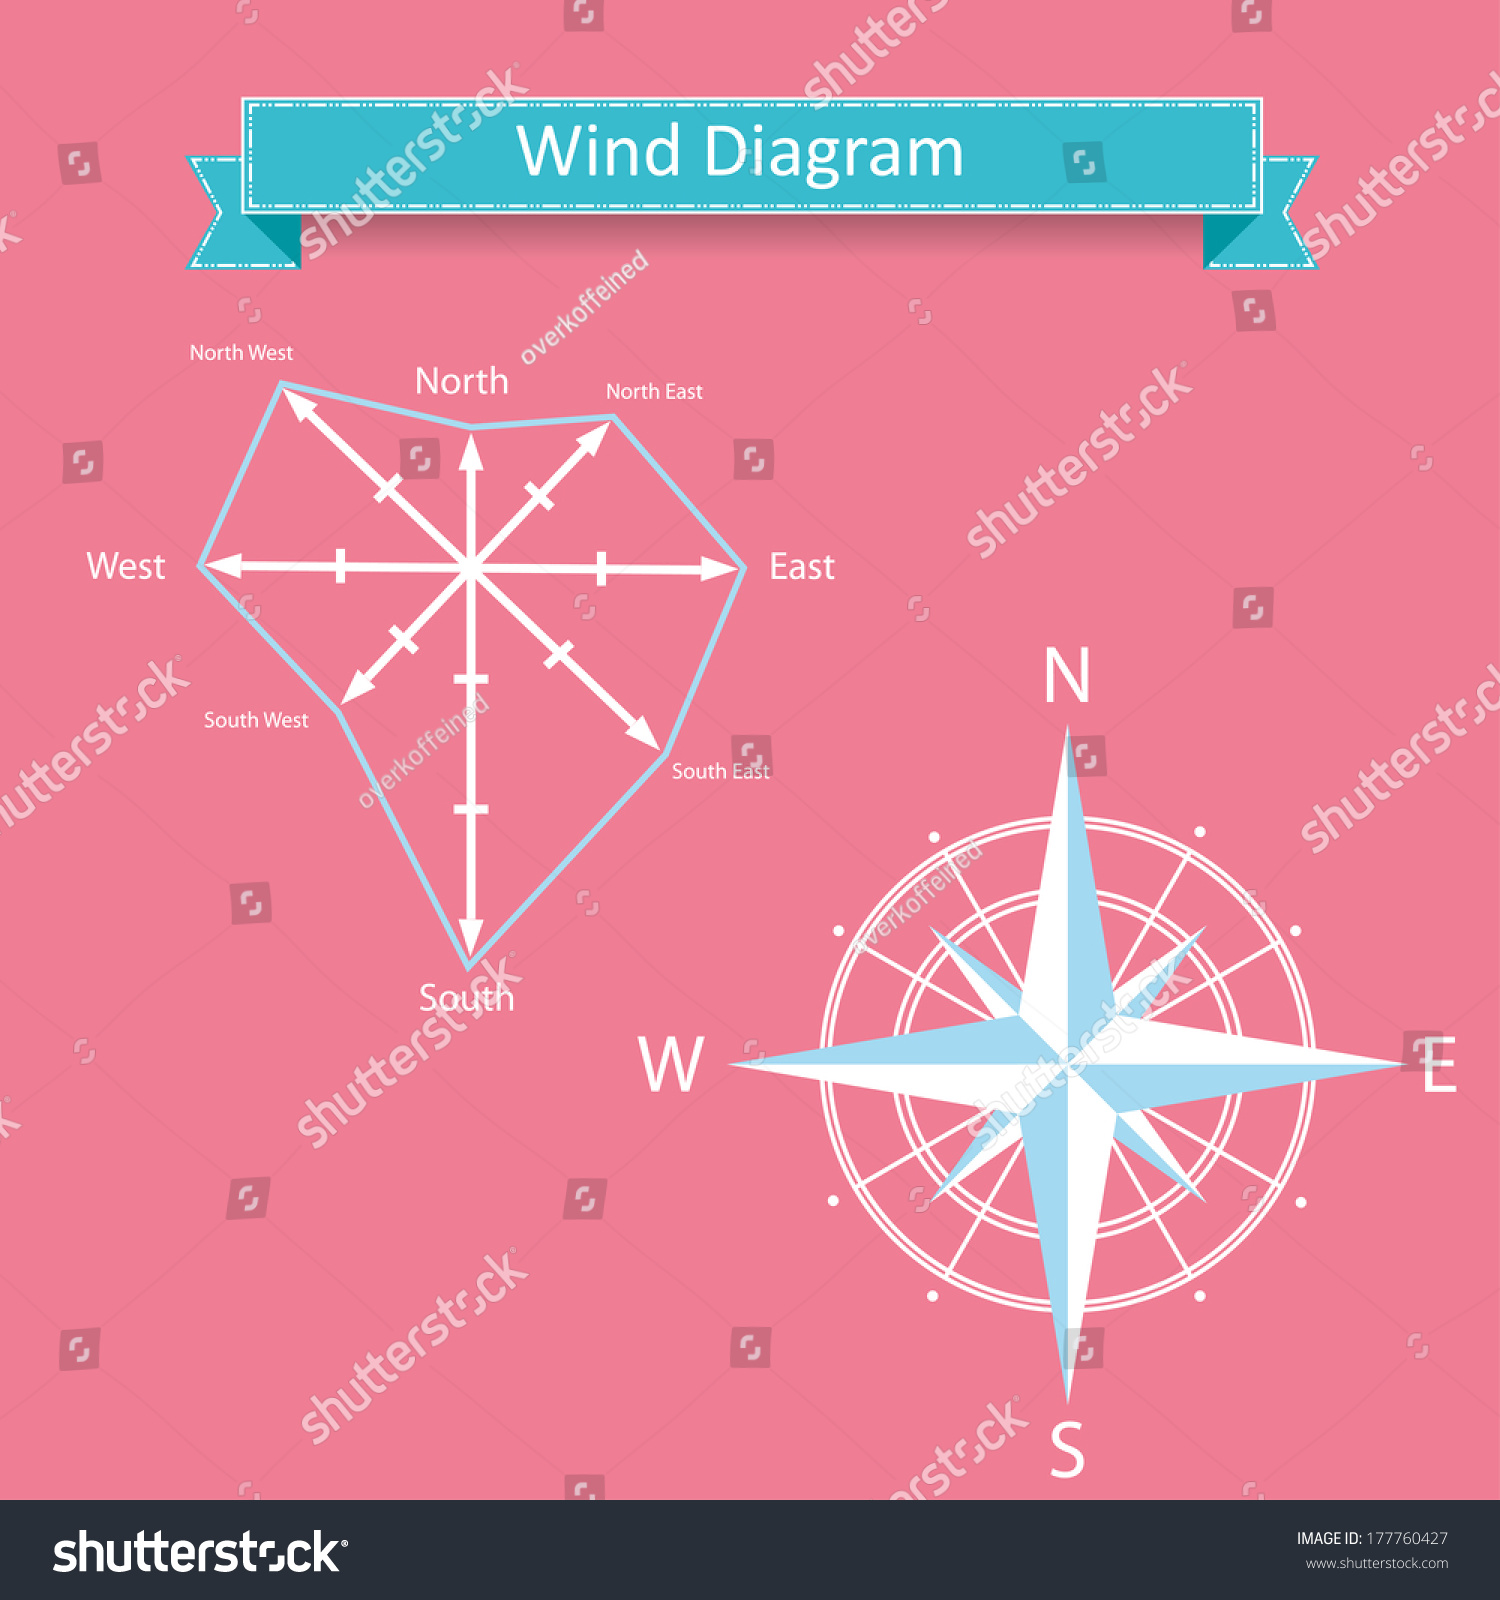 Wind Rose Diagram Compass Vector North Stock Royalty Free Of And With West South East Directions